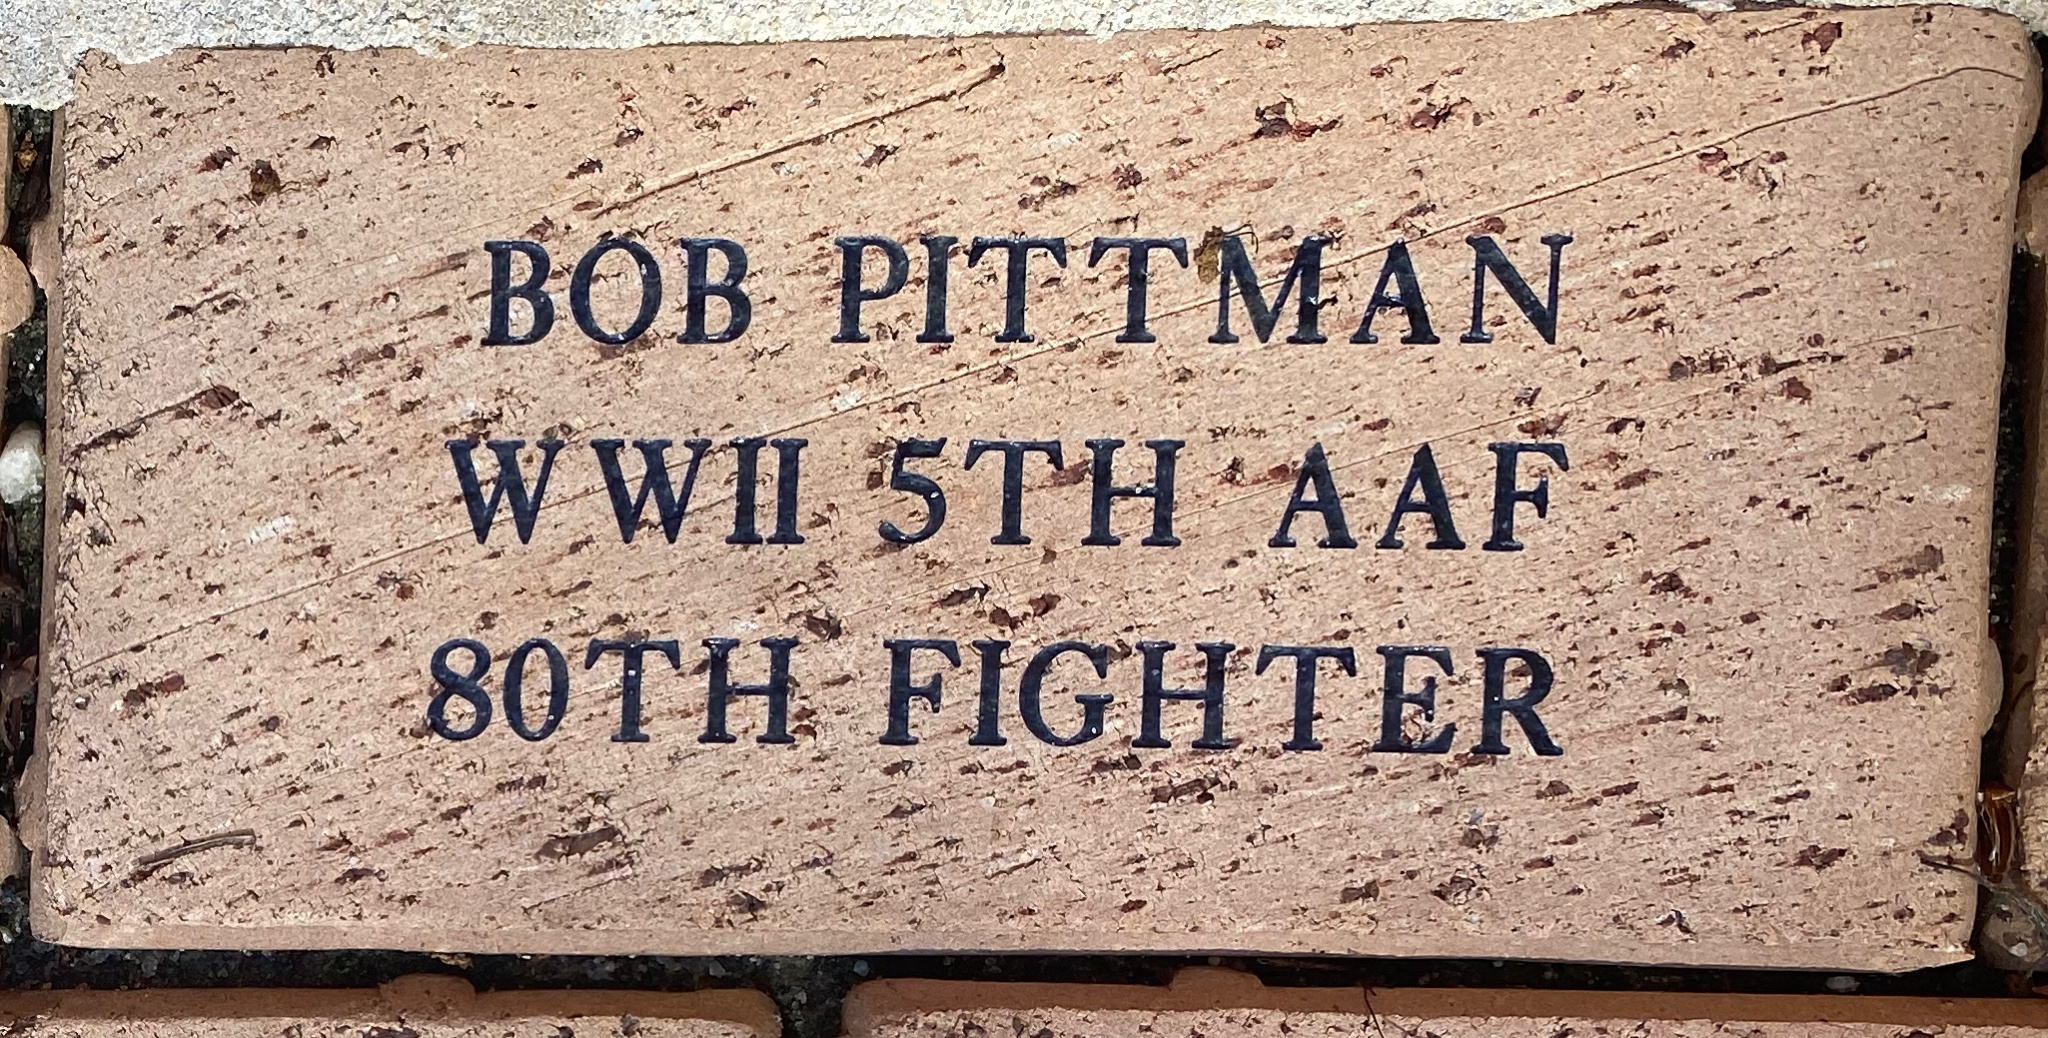 BOB PITTMAN WWII 5TH AAF 80TH FIGHTER